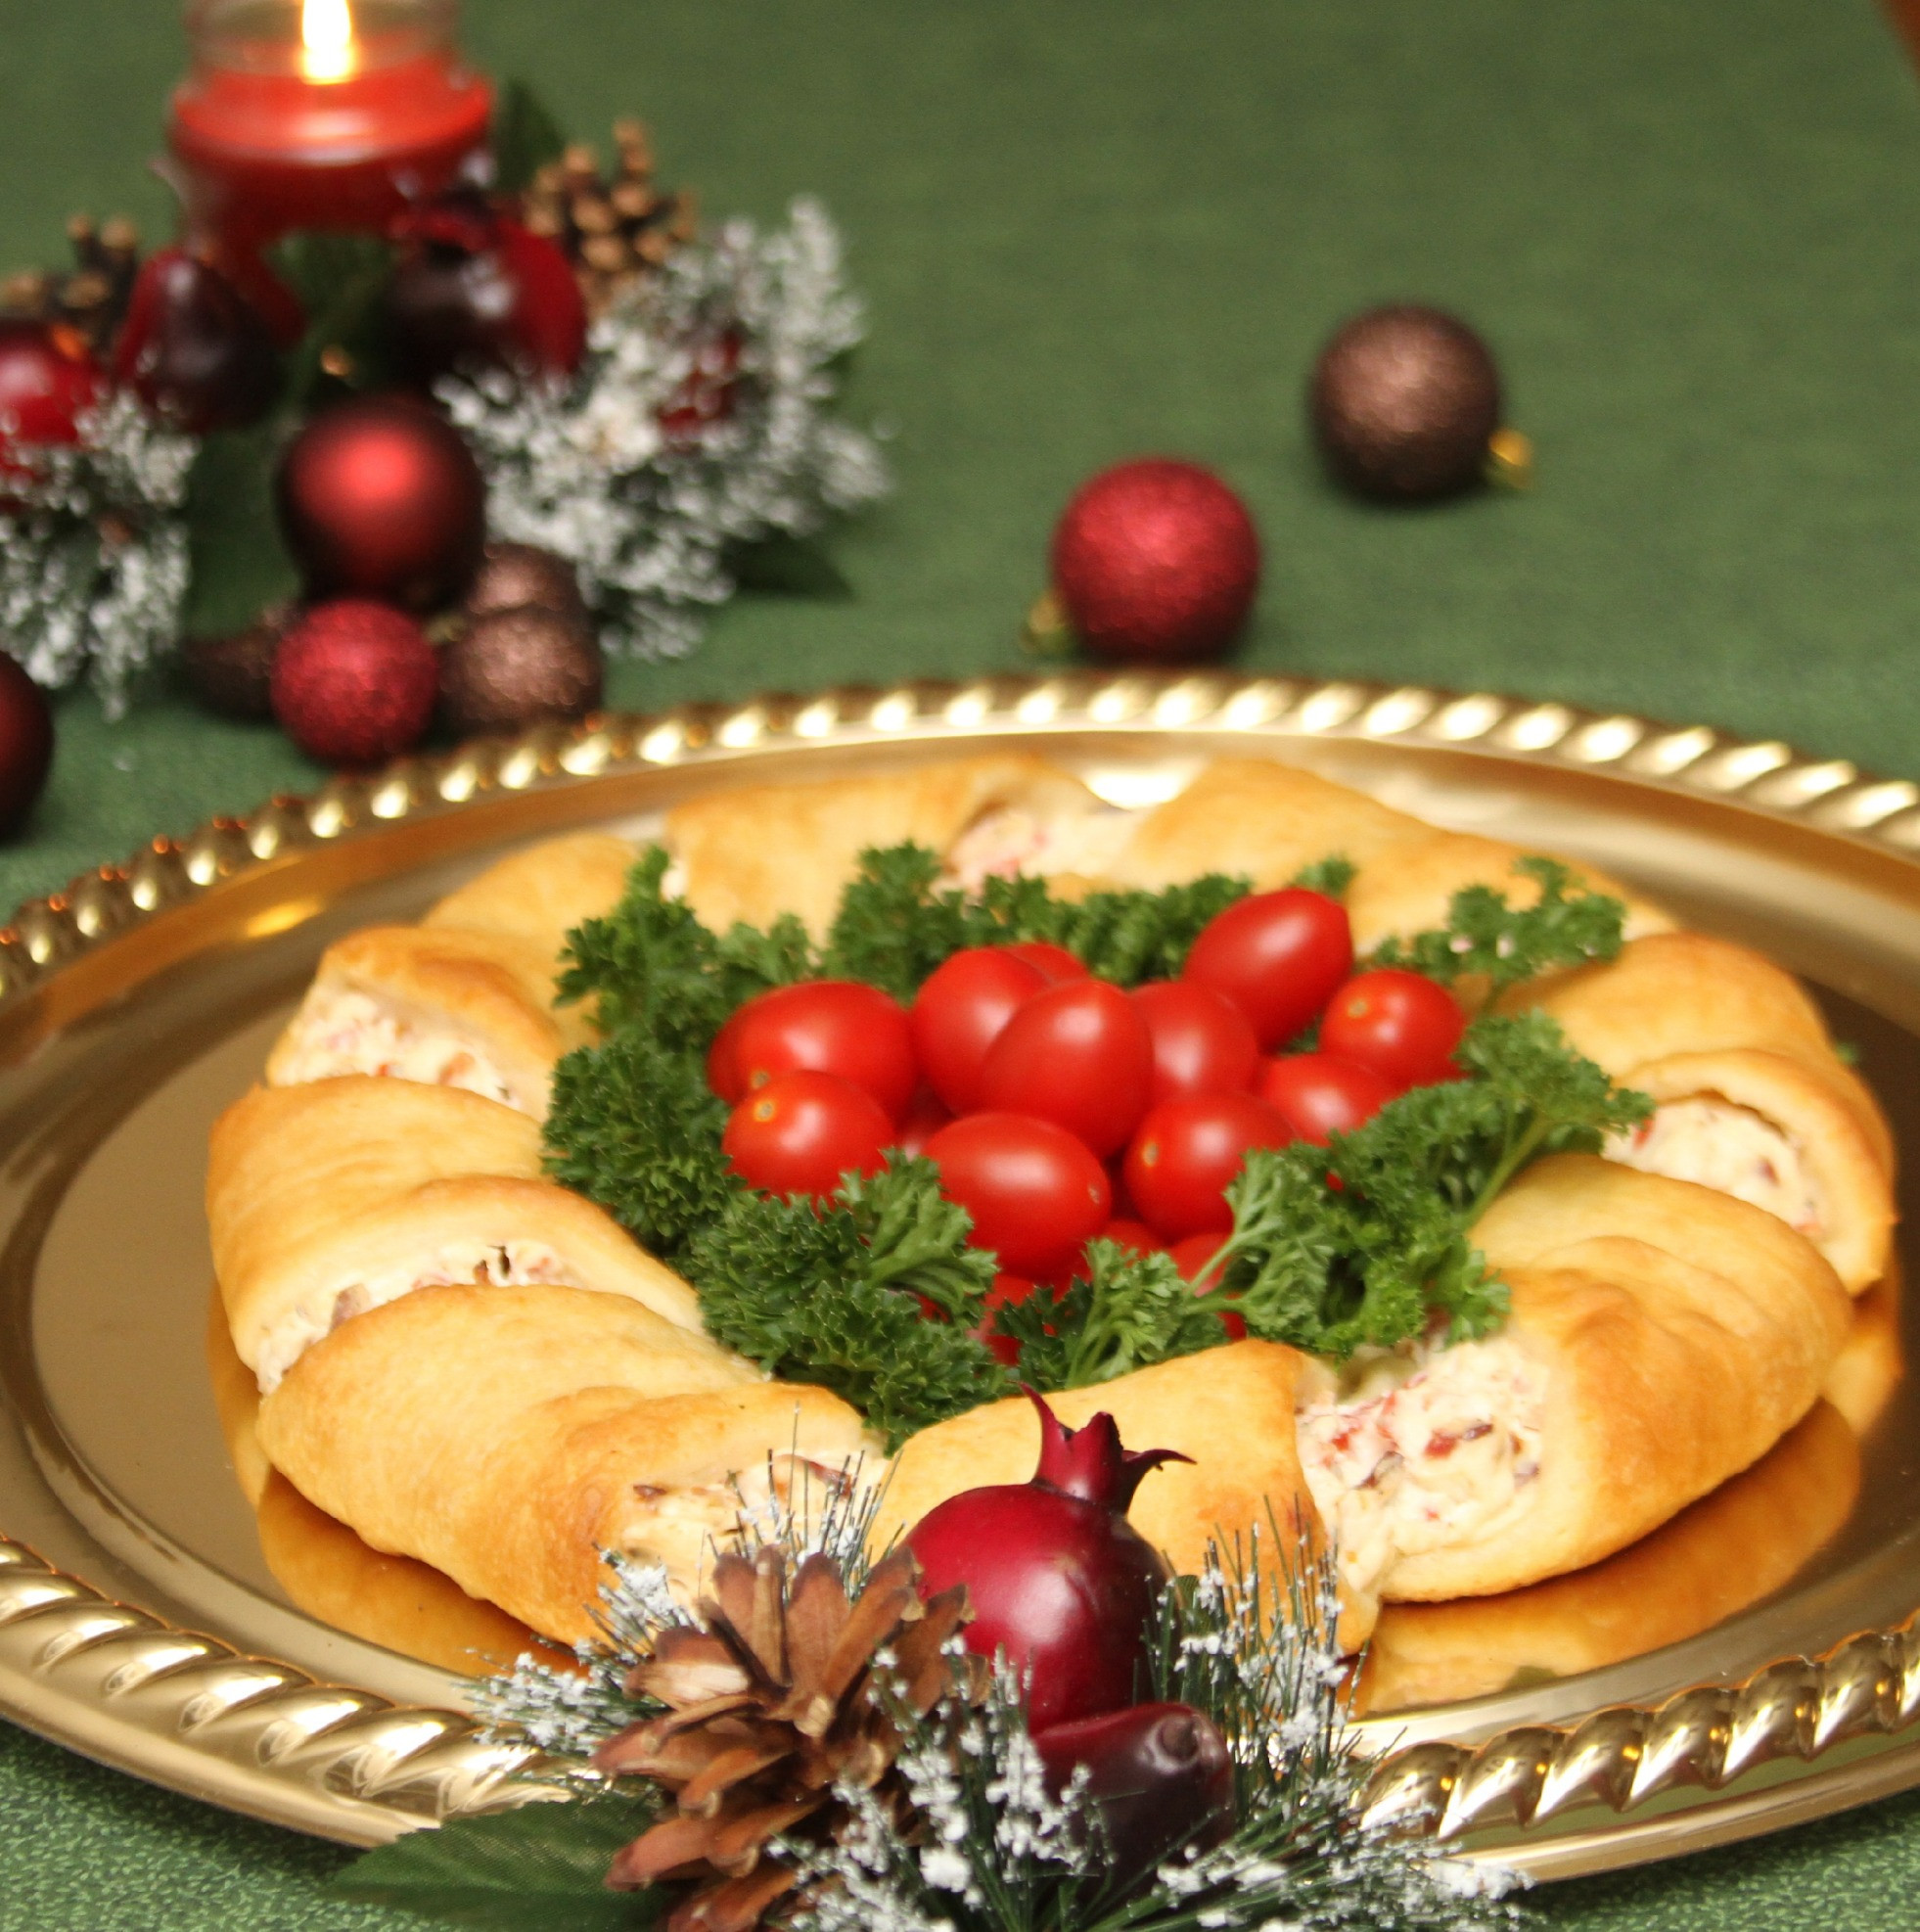 Christmas Holiday Appetizers  Christmas Wreath Crescent Rolls Appetizer Recipes Just